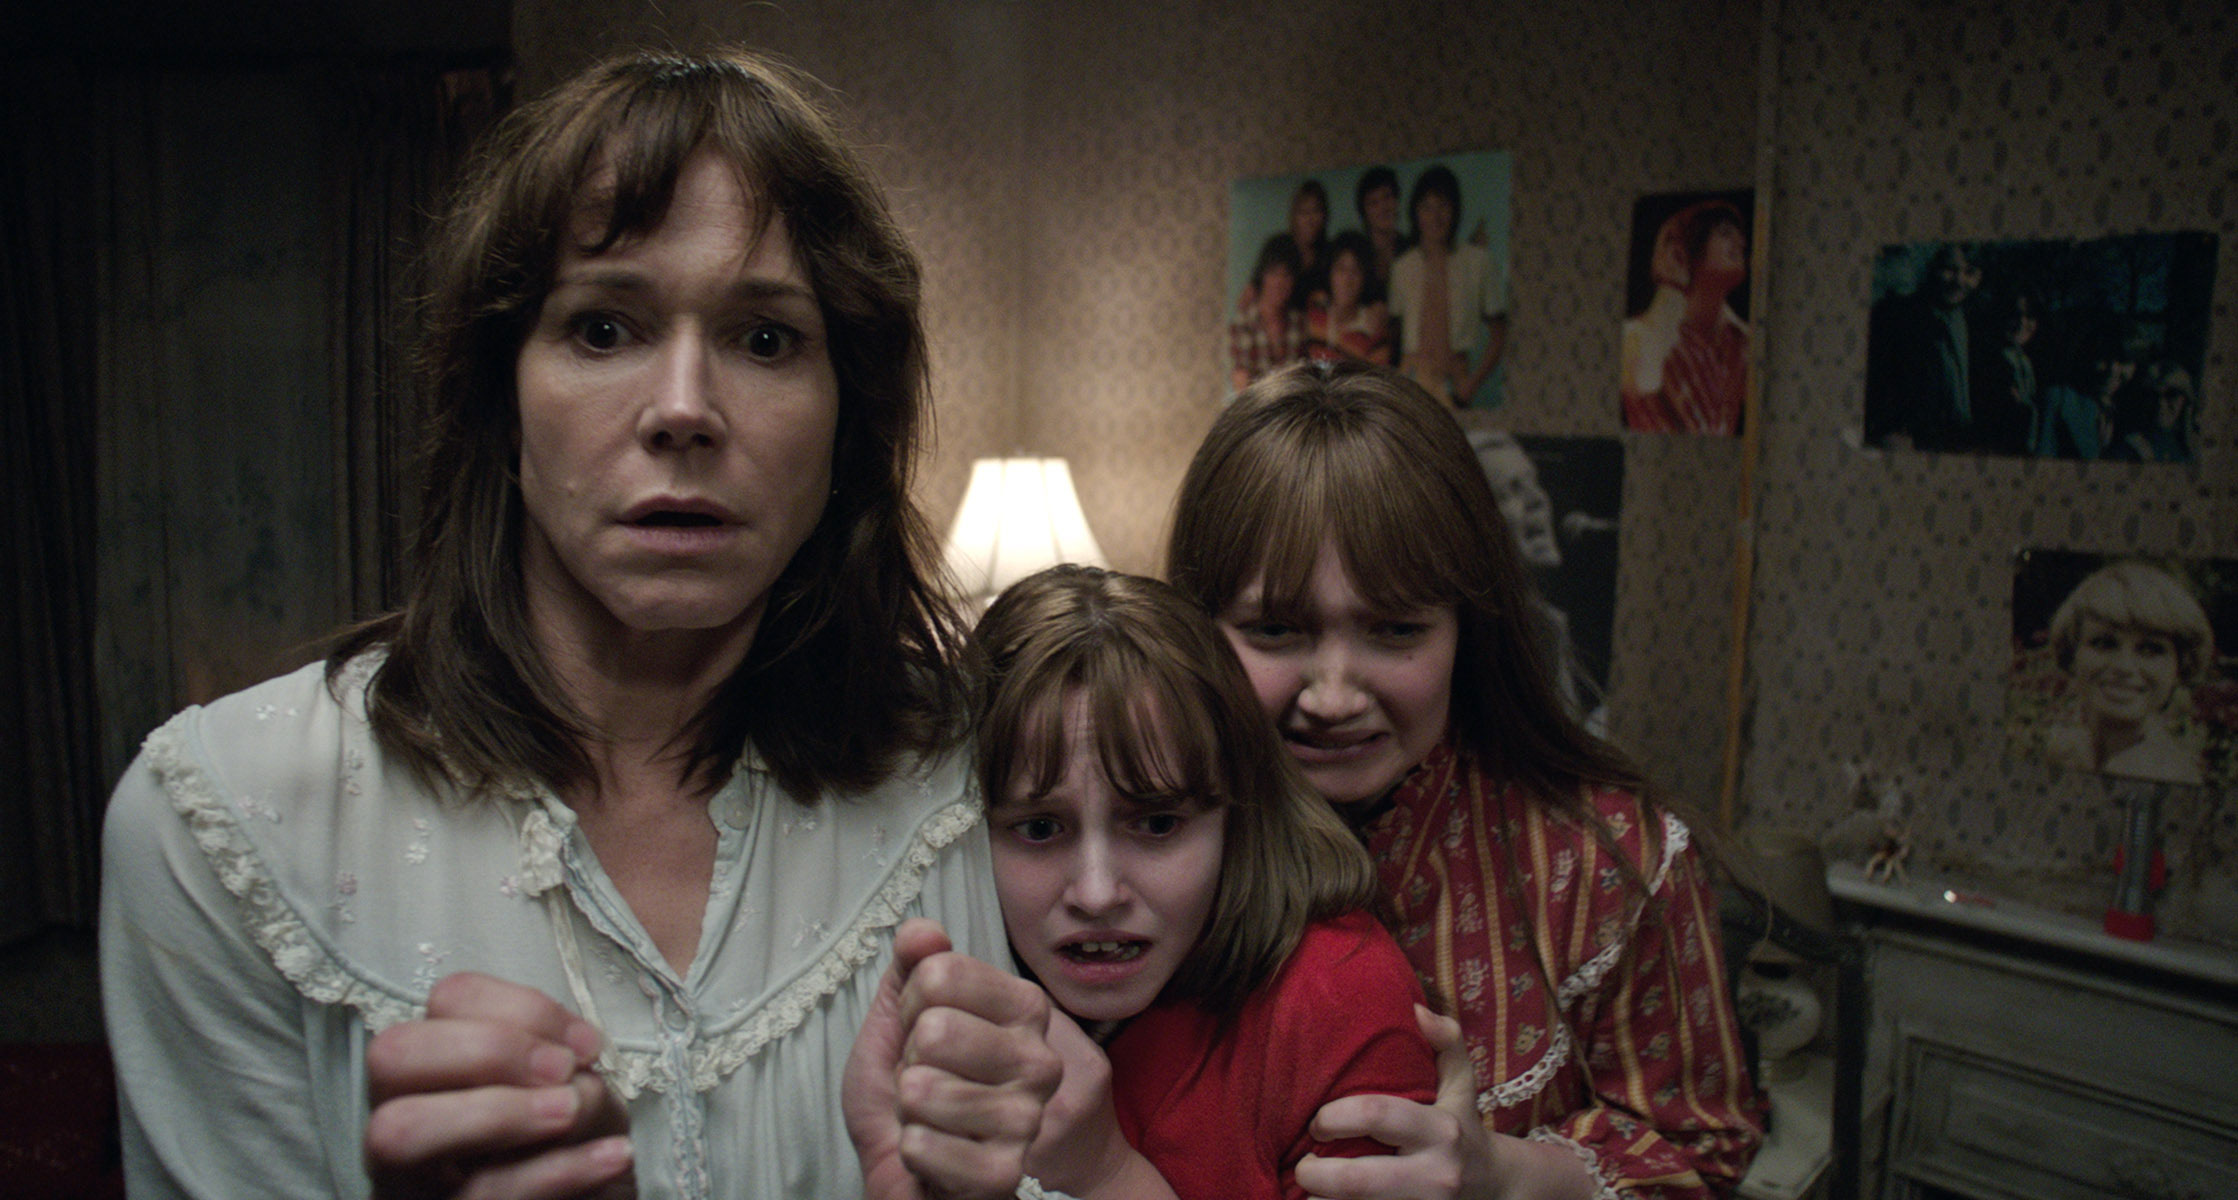 conjuring 2 full movie in english hd 720p download